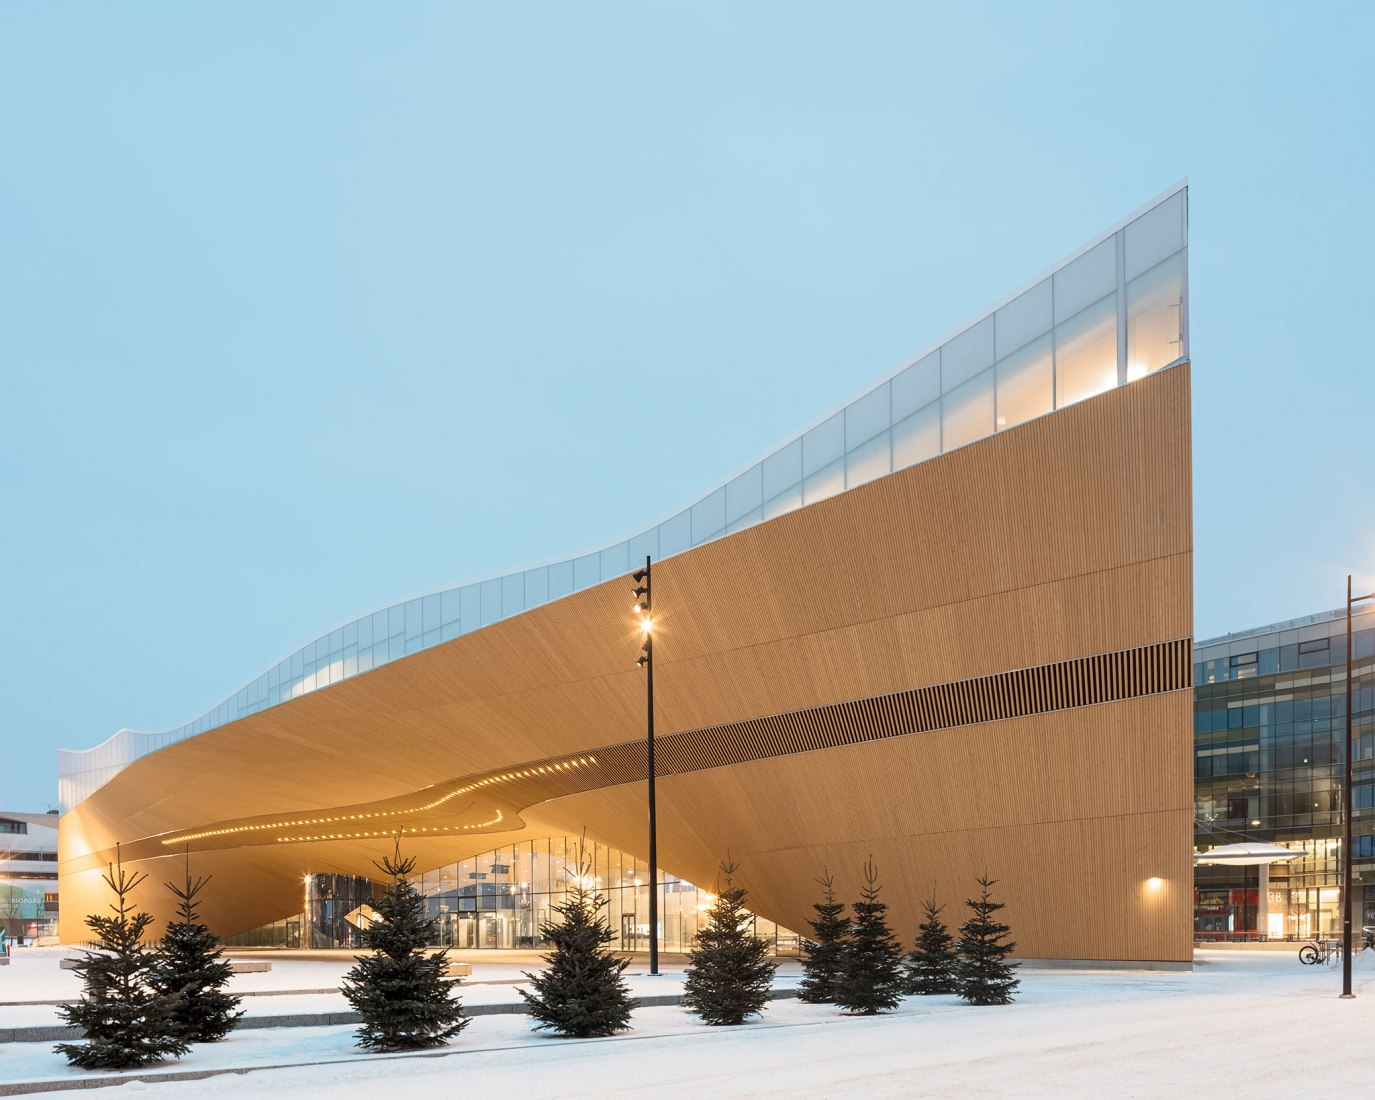 Helsinki Central Library OODI by ALA Architects. Photograph by Tuomas Uusheimo